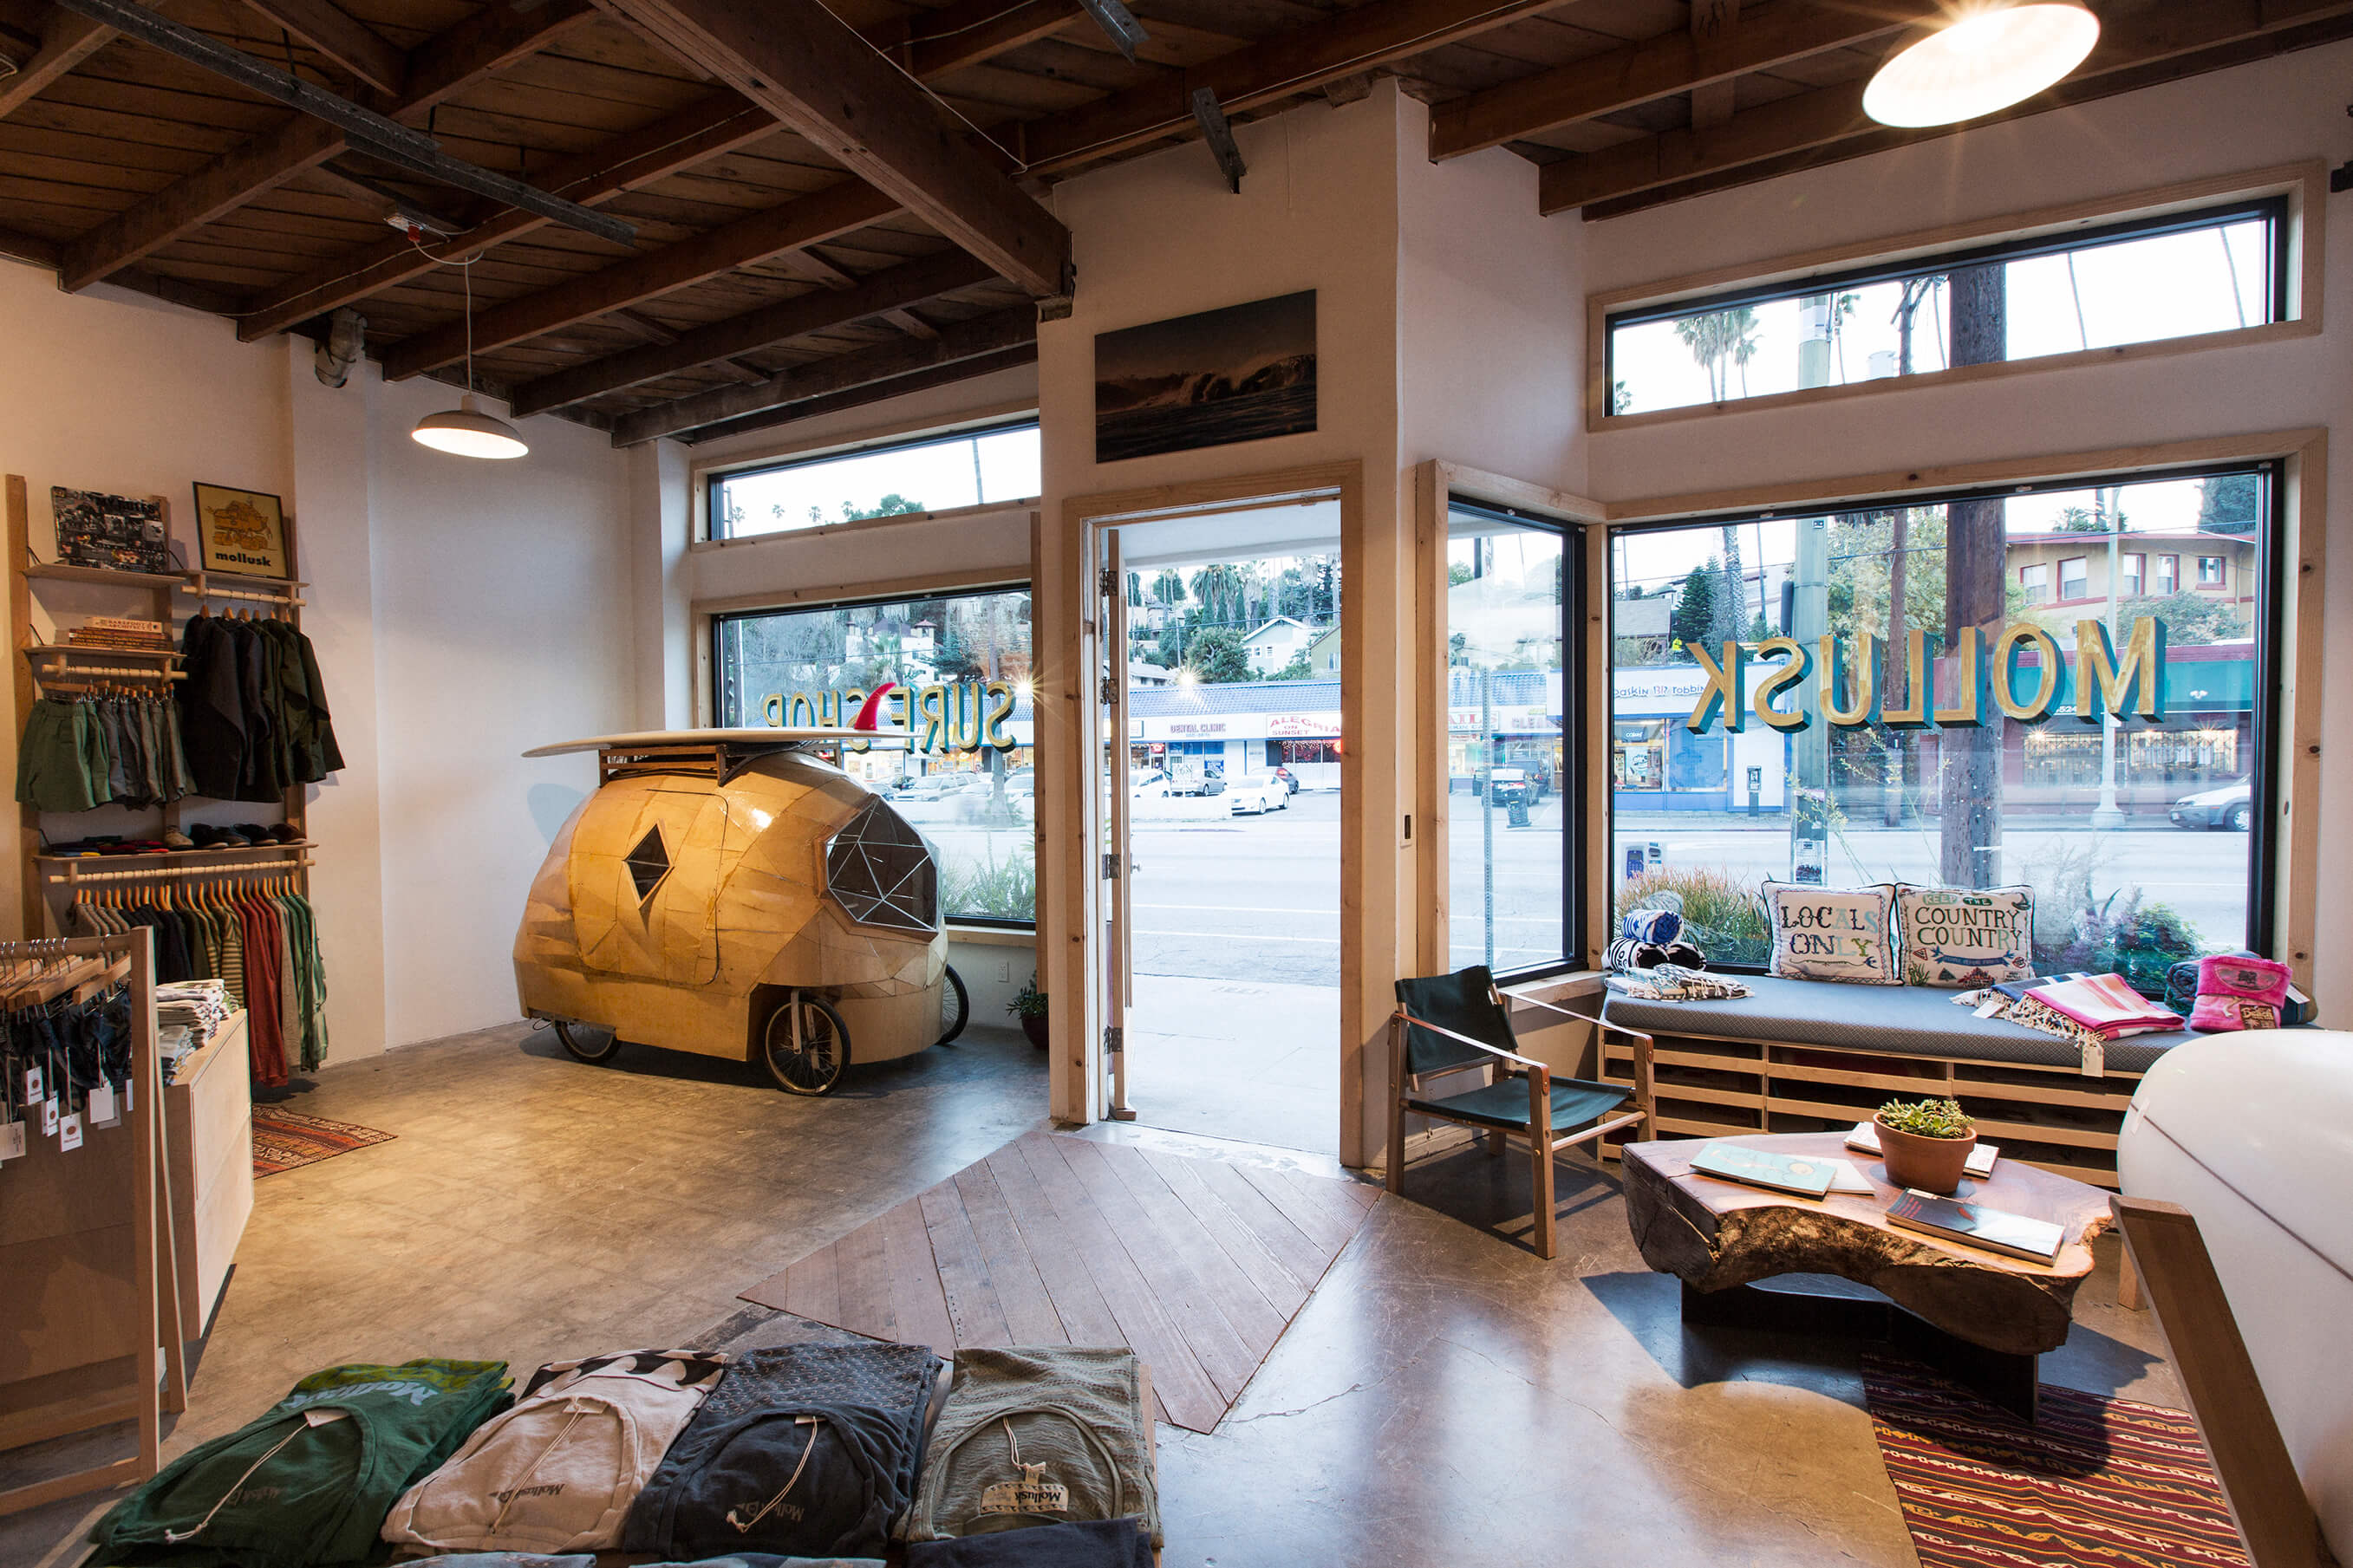 Our Locations – Mollusk Surf Shop